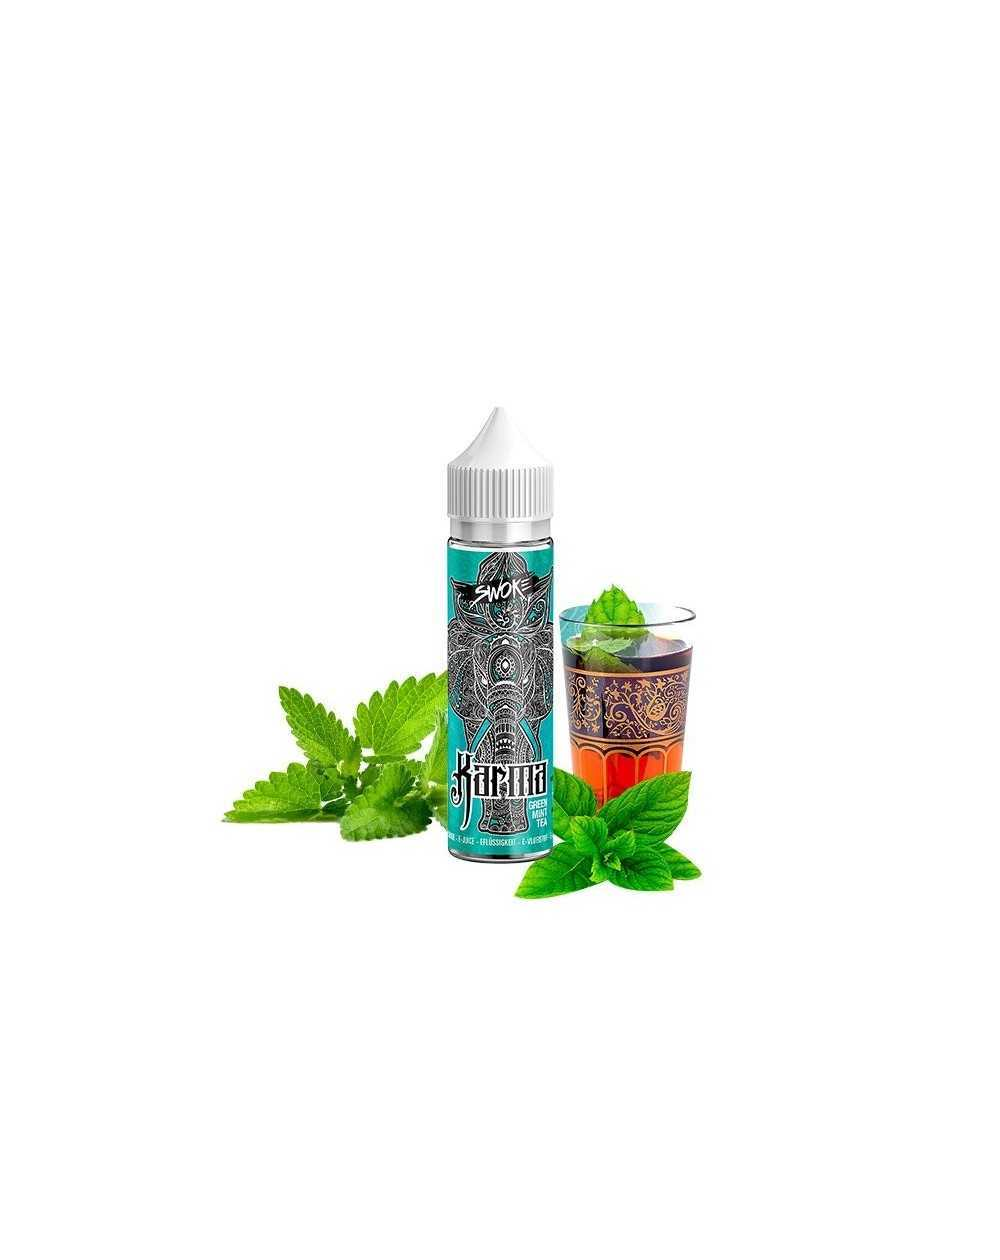 Karma 50ml - Swoke-1